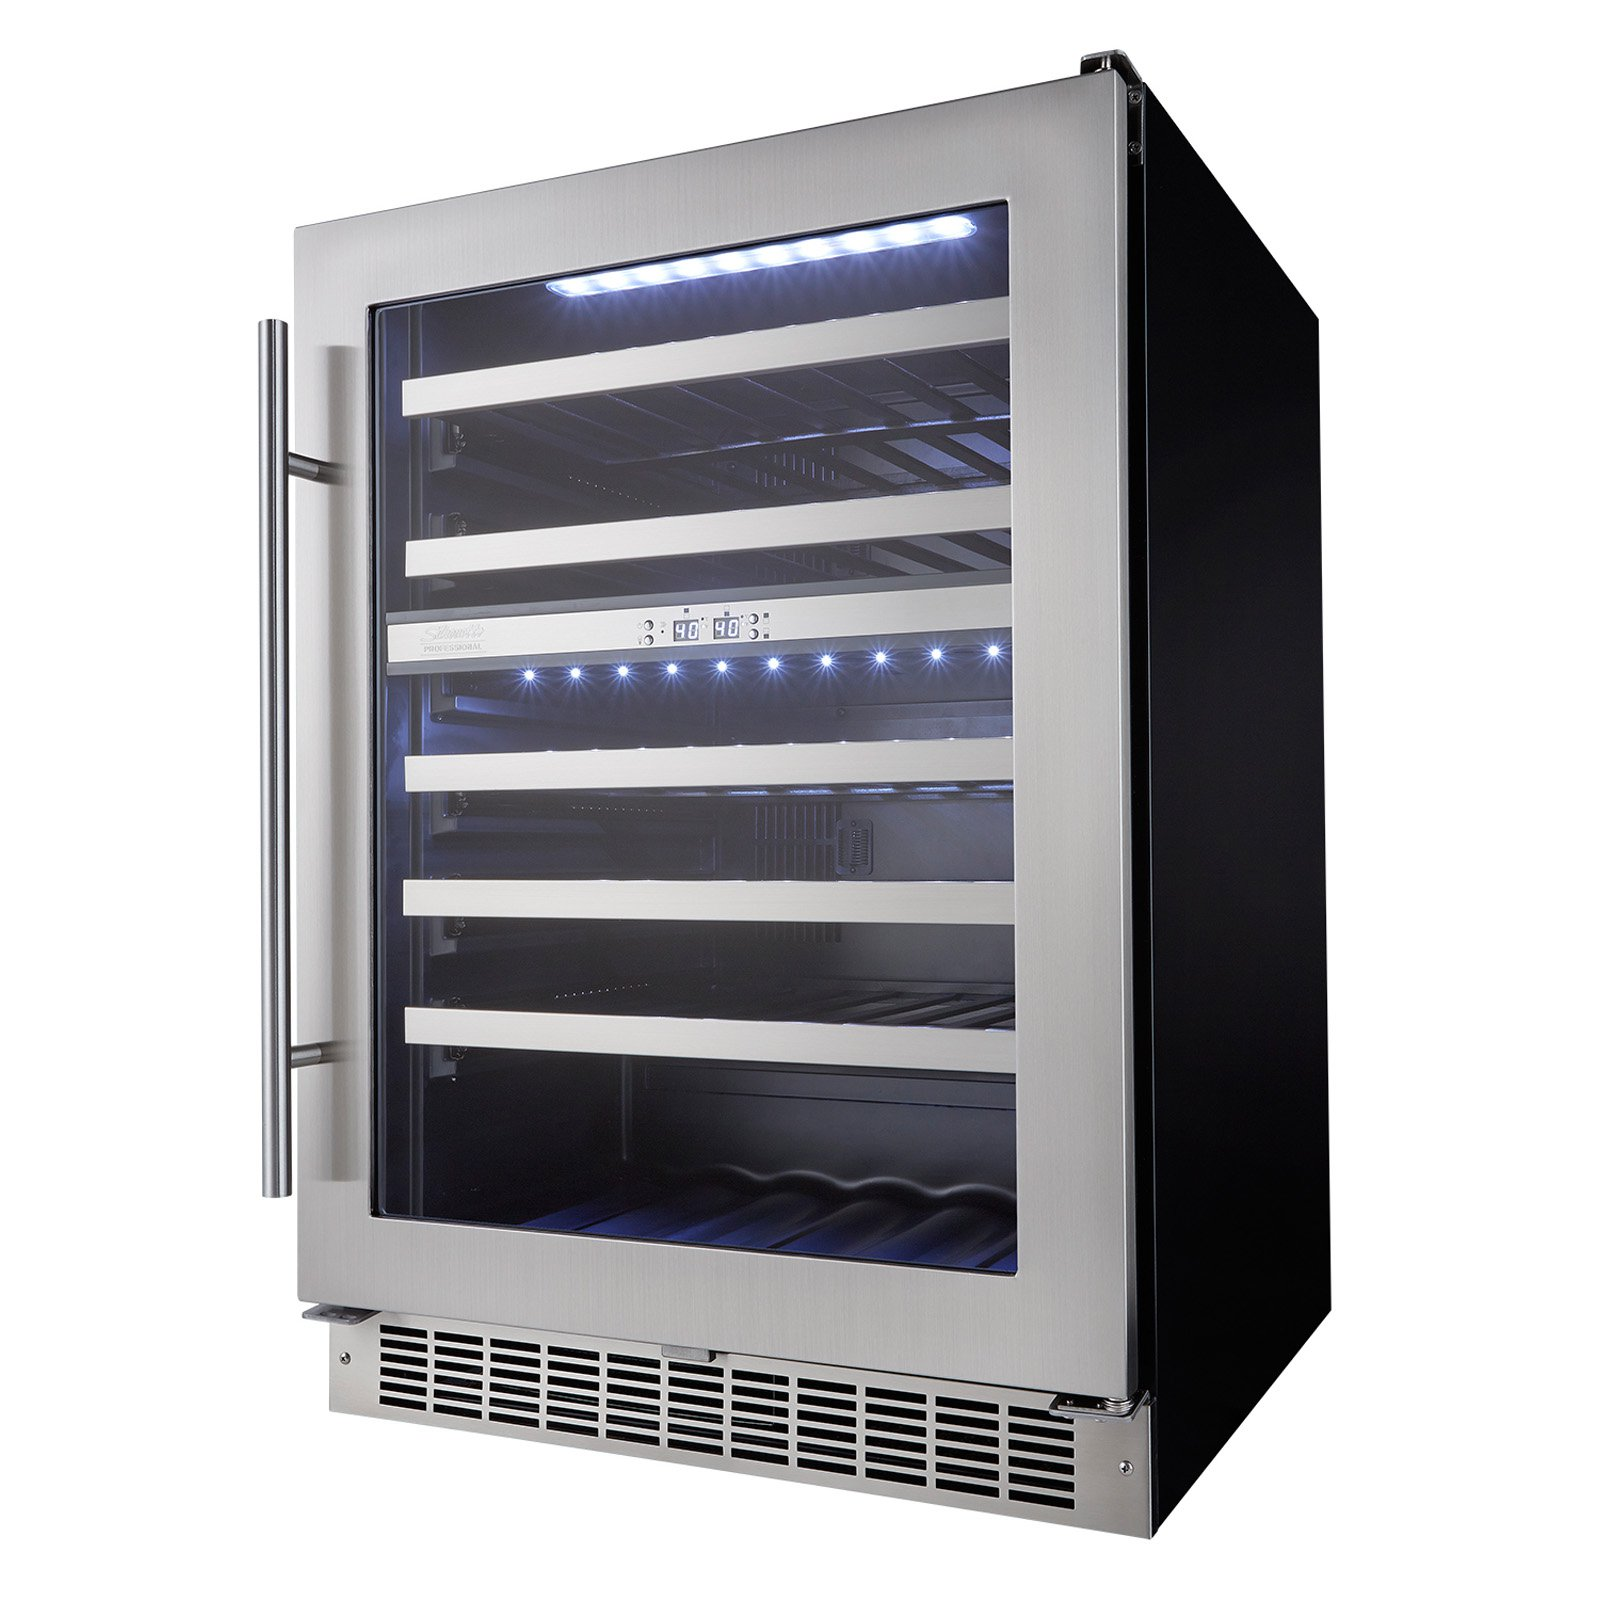 Silhouette Professional 51 bottle Built-In Wine Cooler